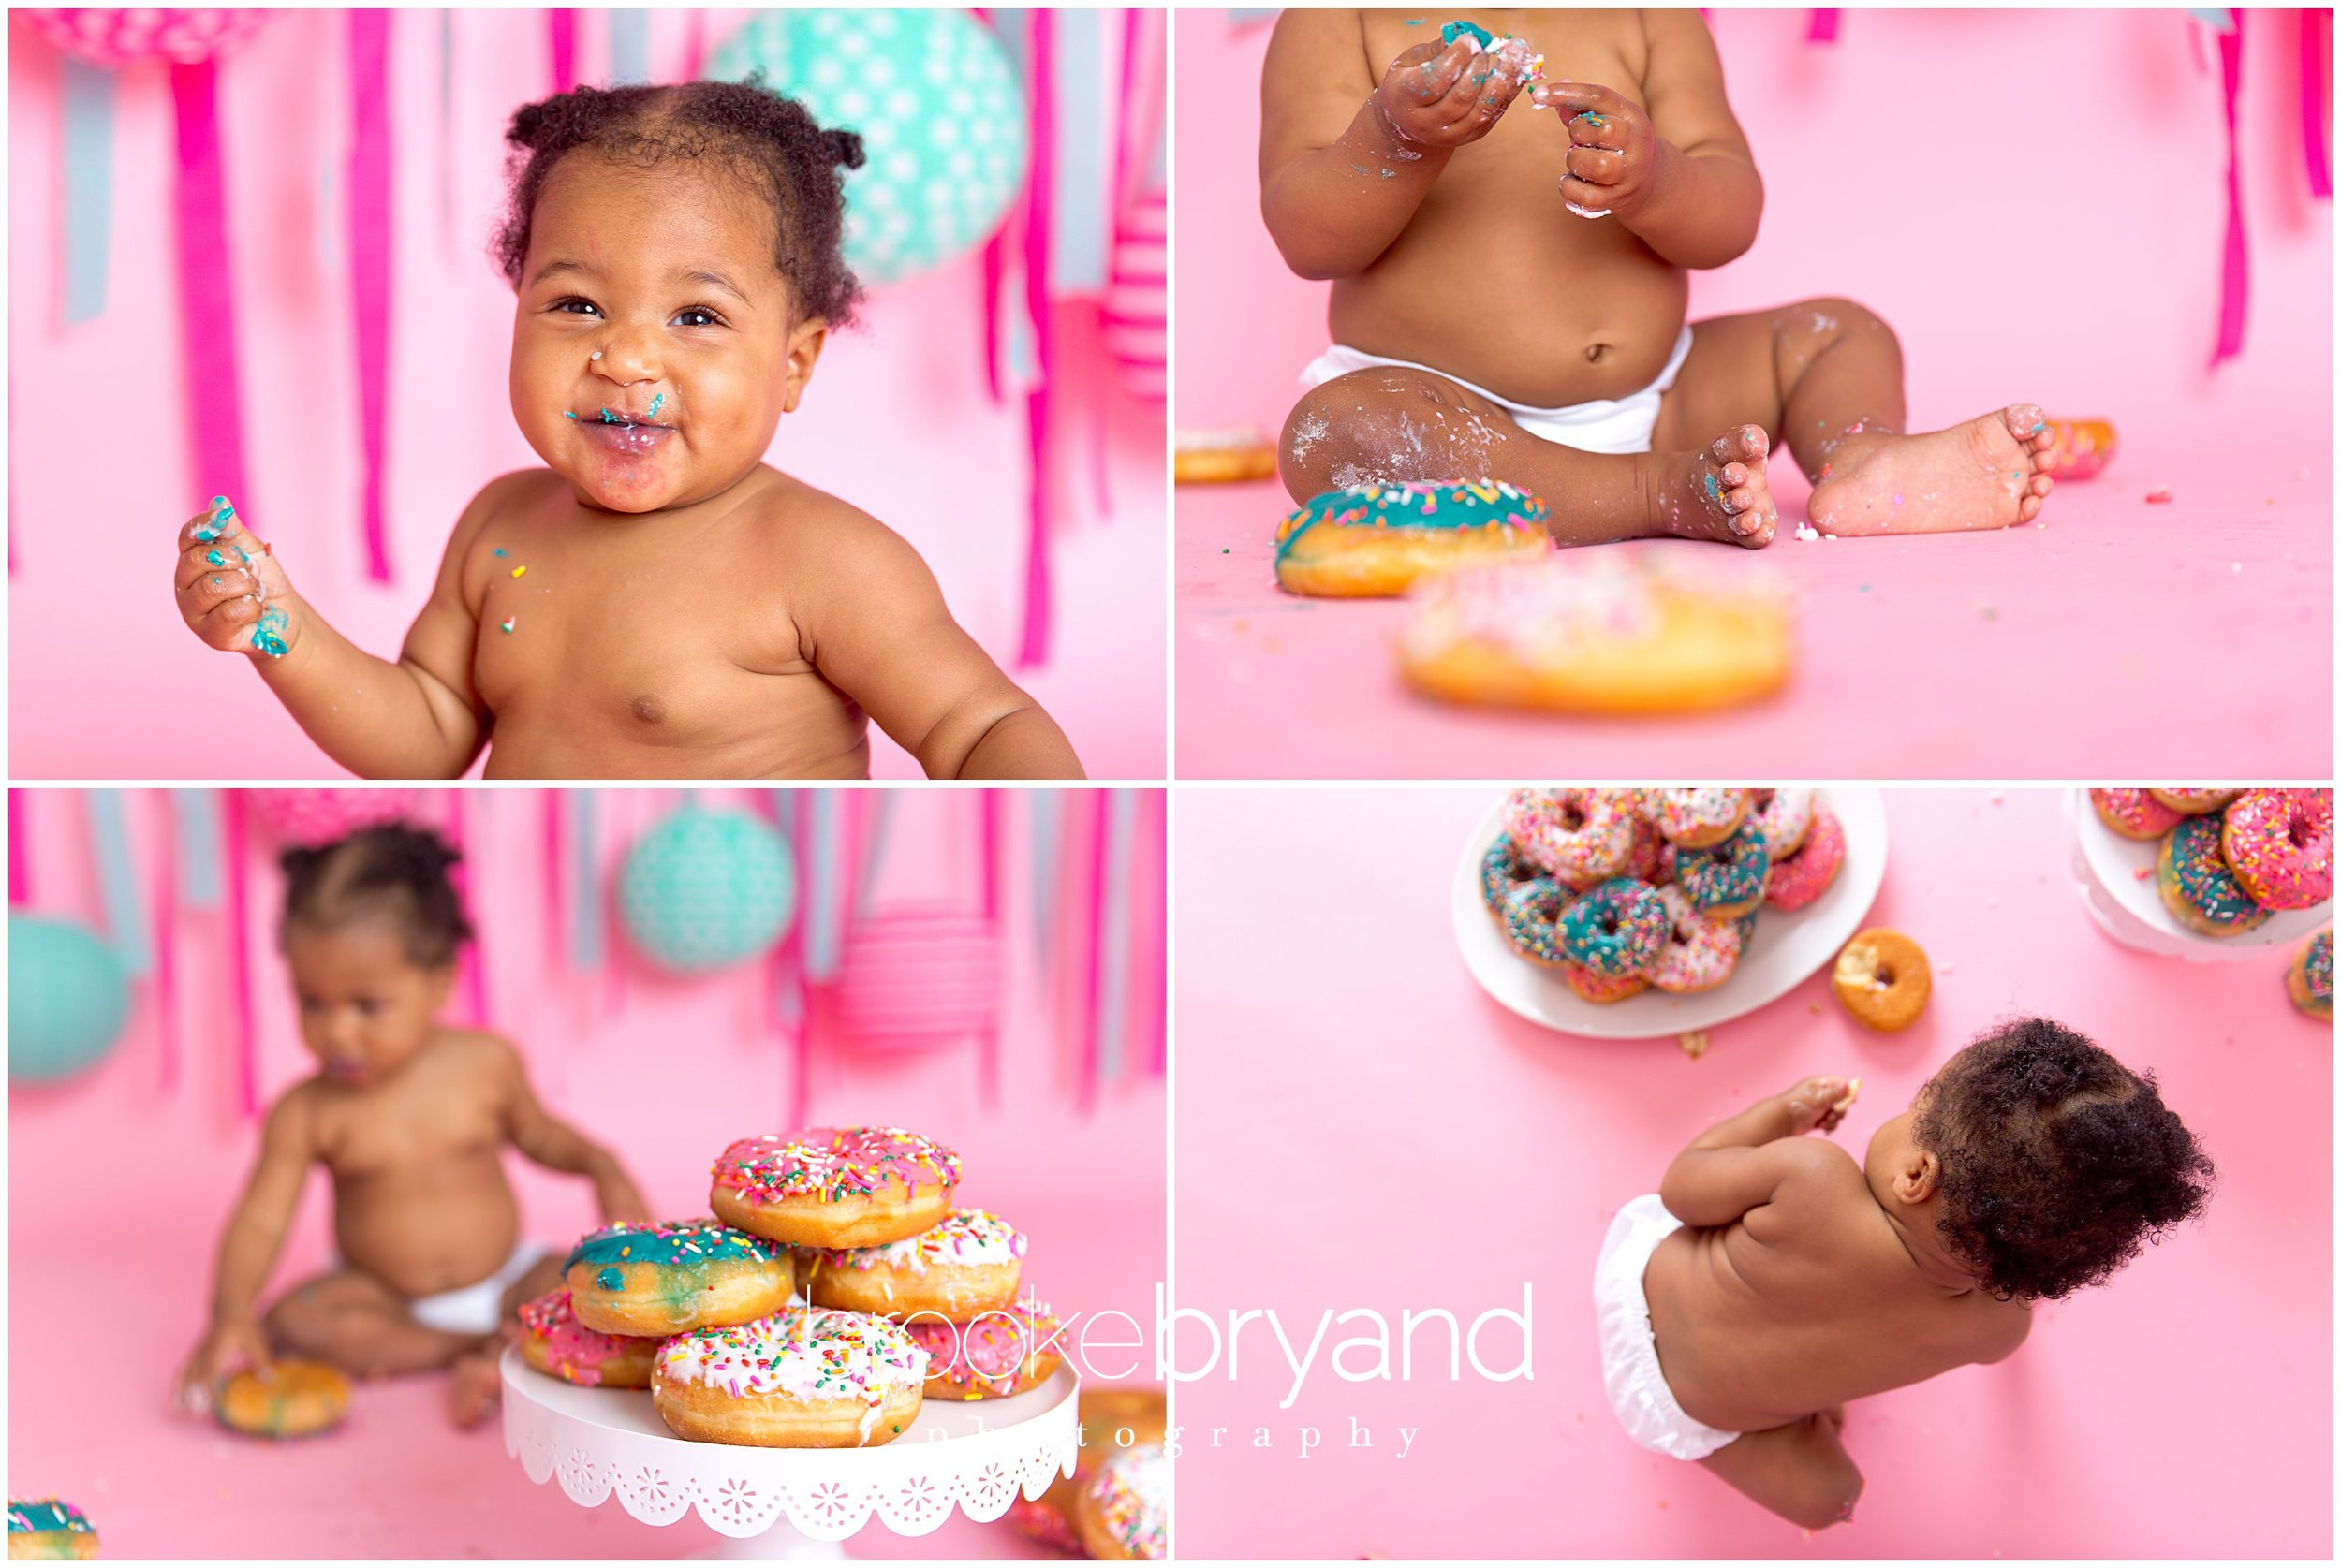 08.2014-Barnes-doughnut-baby-photo-session-BBP_3202_San-Francisco-Family-Photos-Brooke-Bryand-Photography.jpg